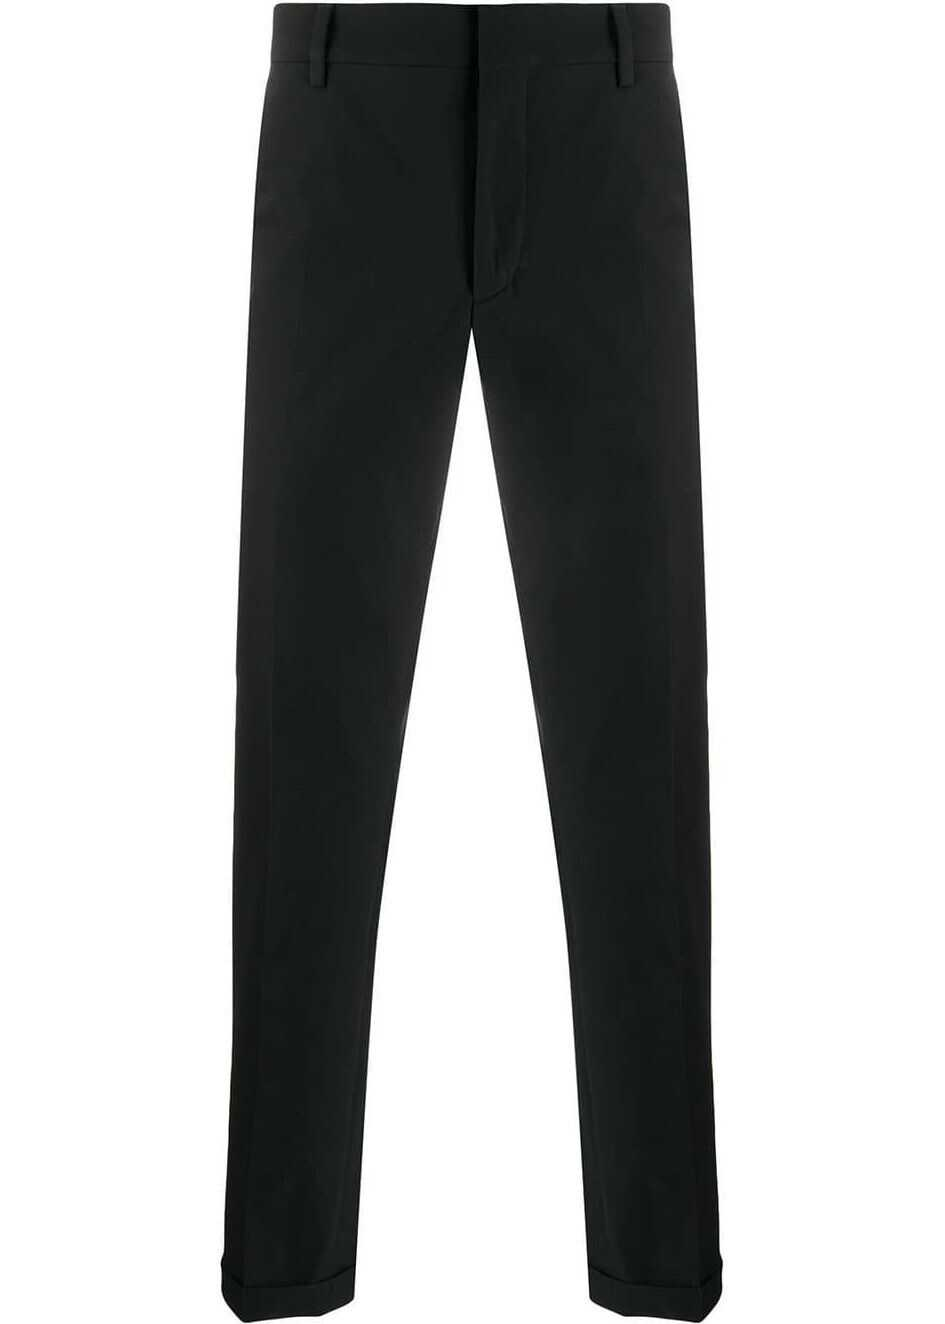 Prada Polyester Pants BLACK